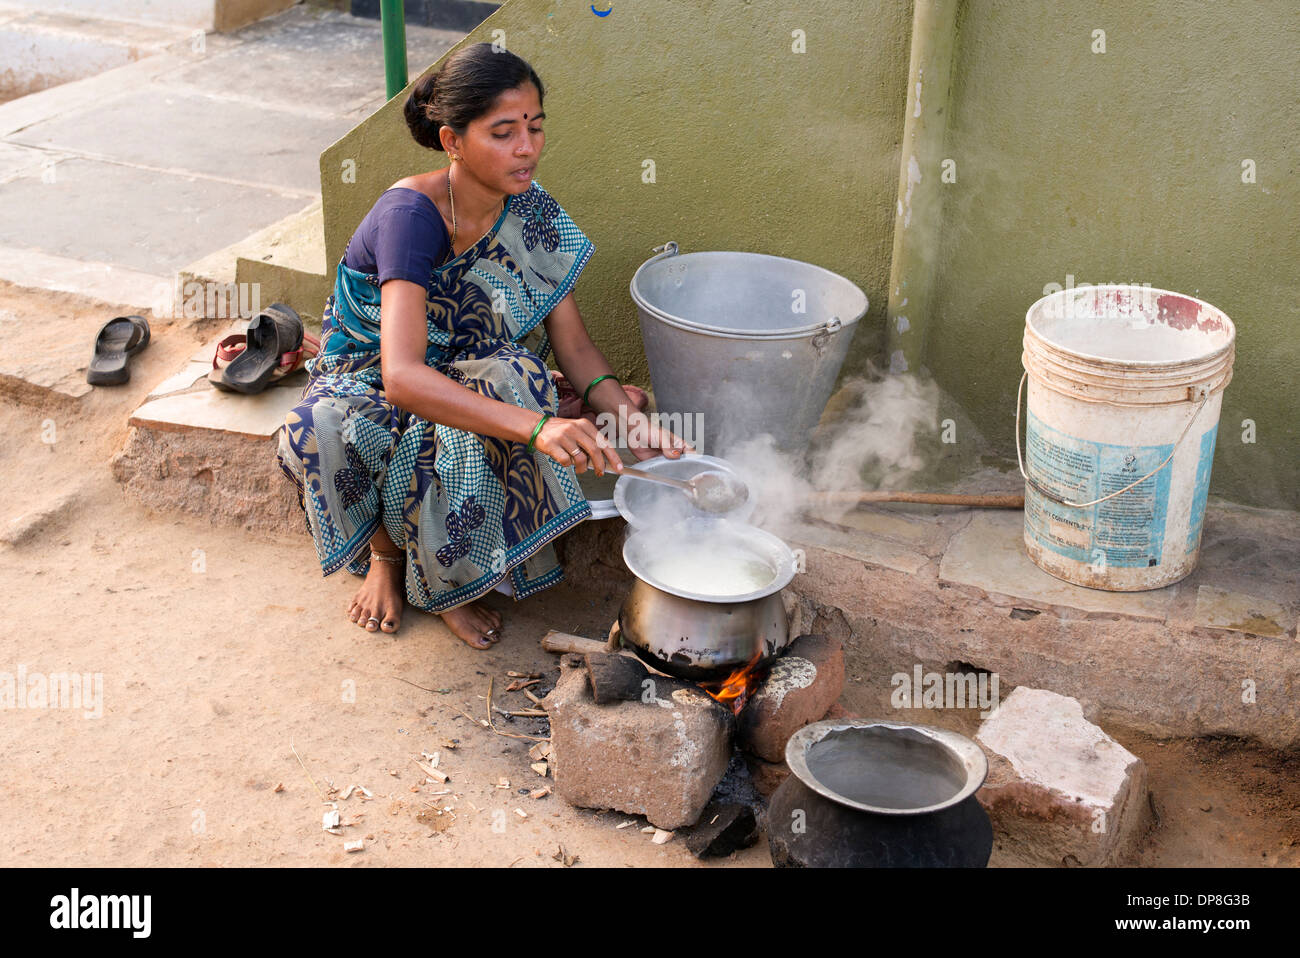 http://c7.alamy.com/comp/DP8G3B/indian-woman-cooking-rice-on-an-open-fire-outside-her-home-in-a-rural-DP8G3B.jpg Indian Woman Cooking